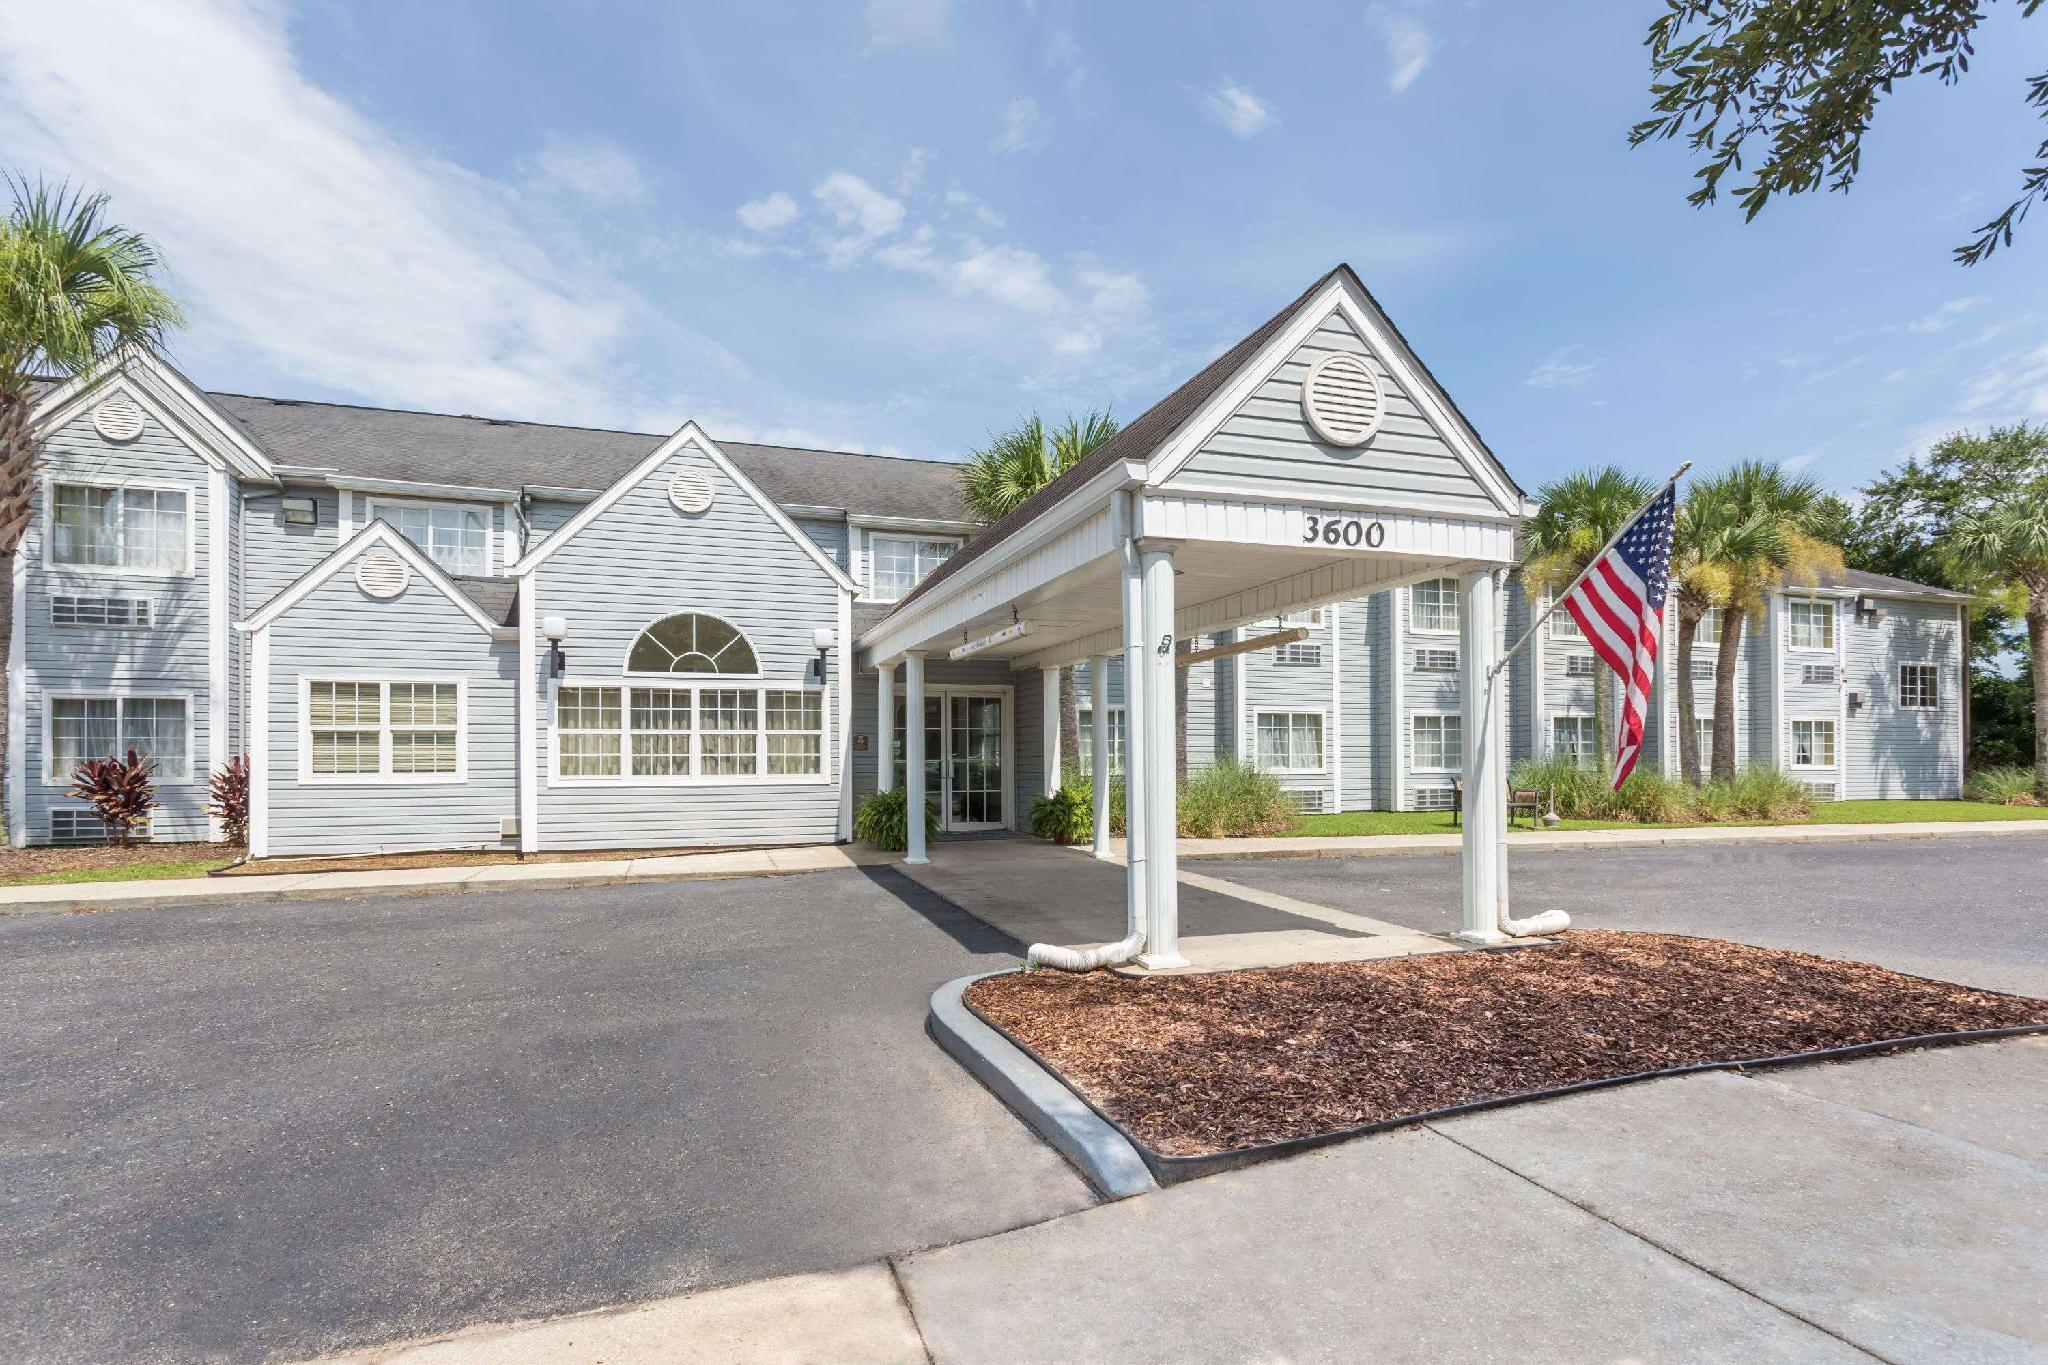 Microtel Inn And Suites By Wyndham Gulf Shores